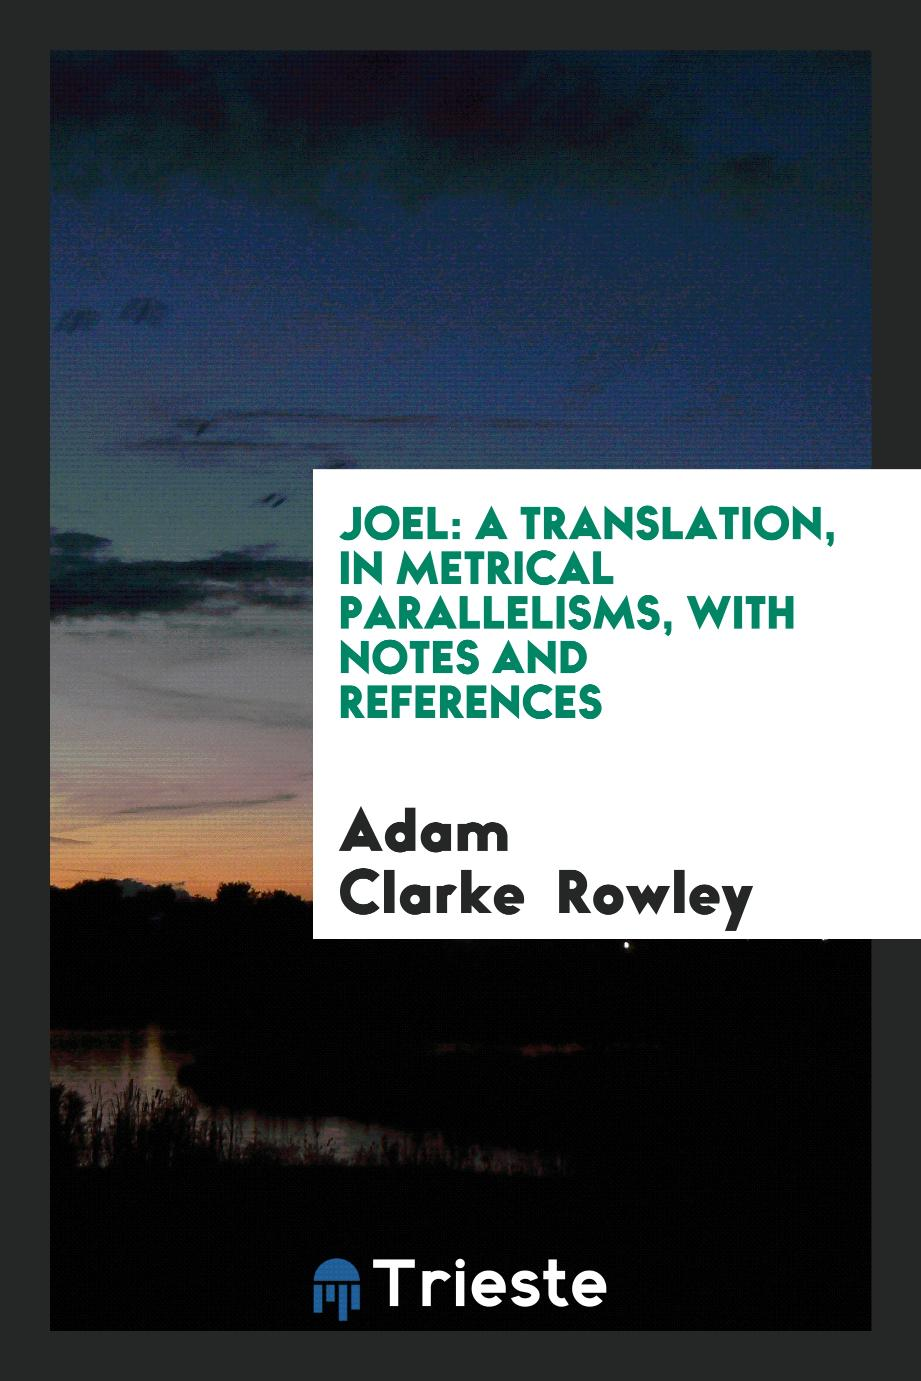 Joel: a translation, in metrical parallelisms, with notes and references